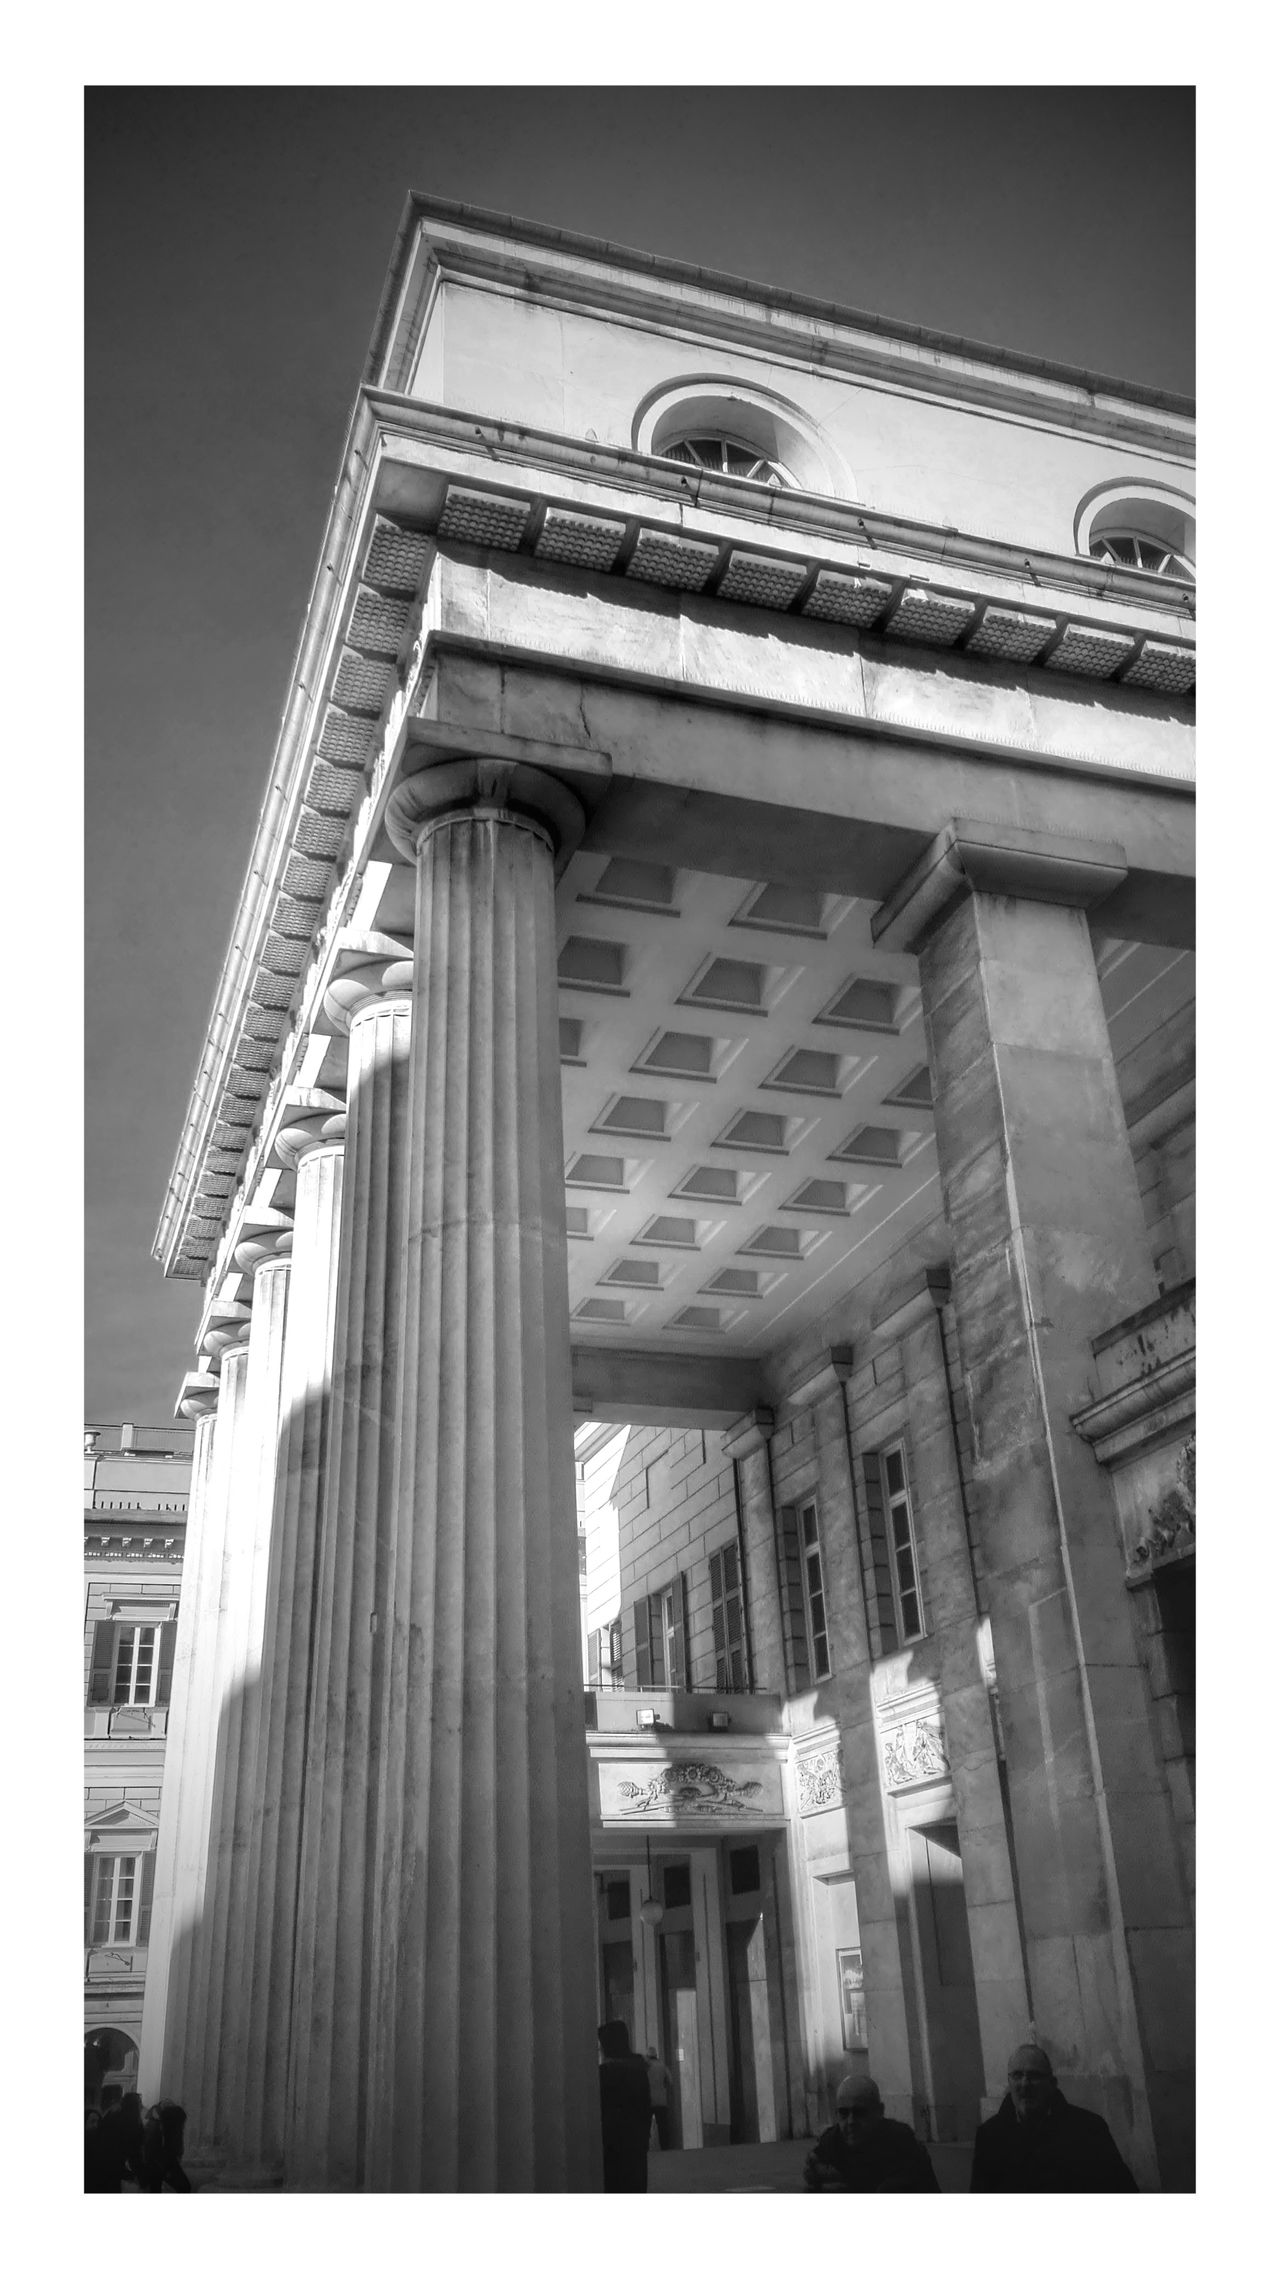 Teatro Carlo Felice Adapted To The City Architectural Column Architecture Black And White Blackandwhite Building Exterior Built Structure Day Low Angle View Monochrome Neoclassical Neoclassical Architecture No People Outdoors Theater Theatre